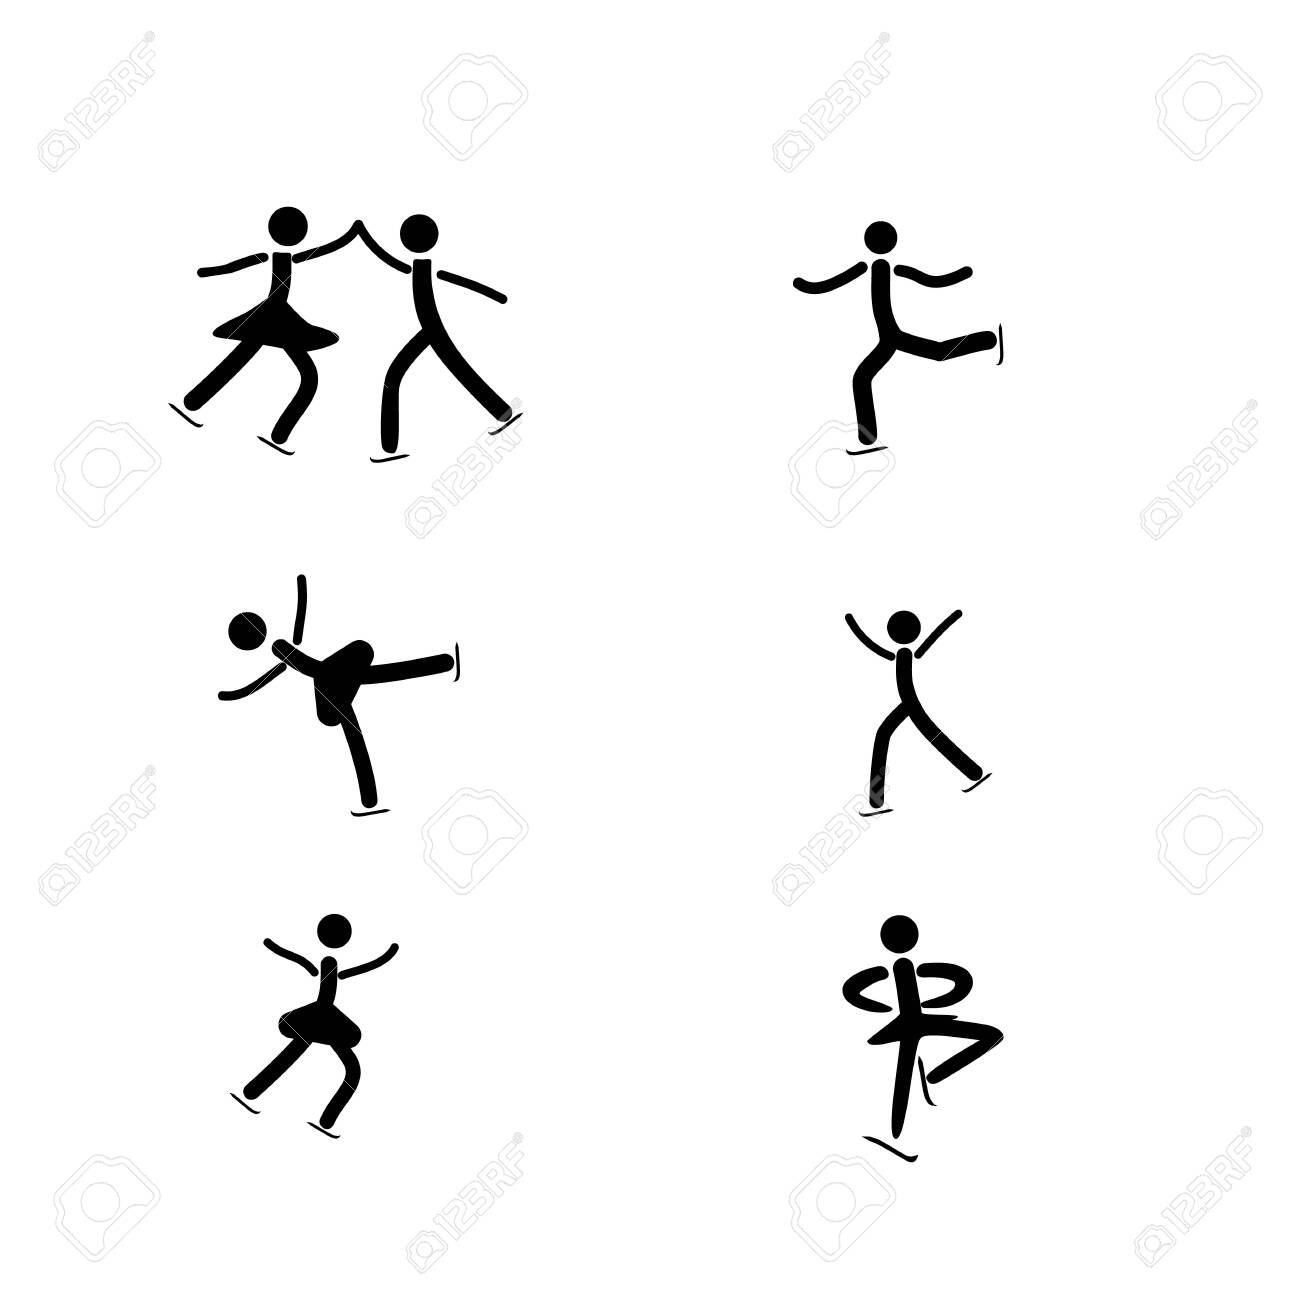 Sports. Figure skating set icon. Silhouette figures skate. Logo professional sports dance on ice. - 150071811